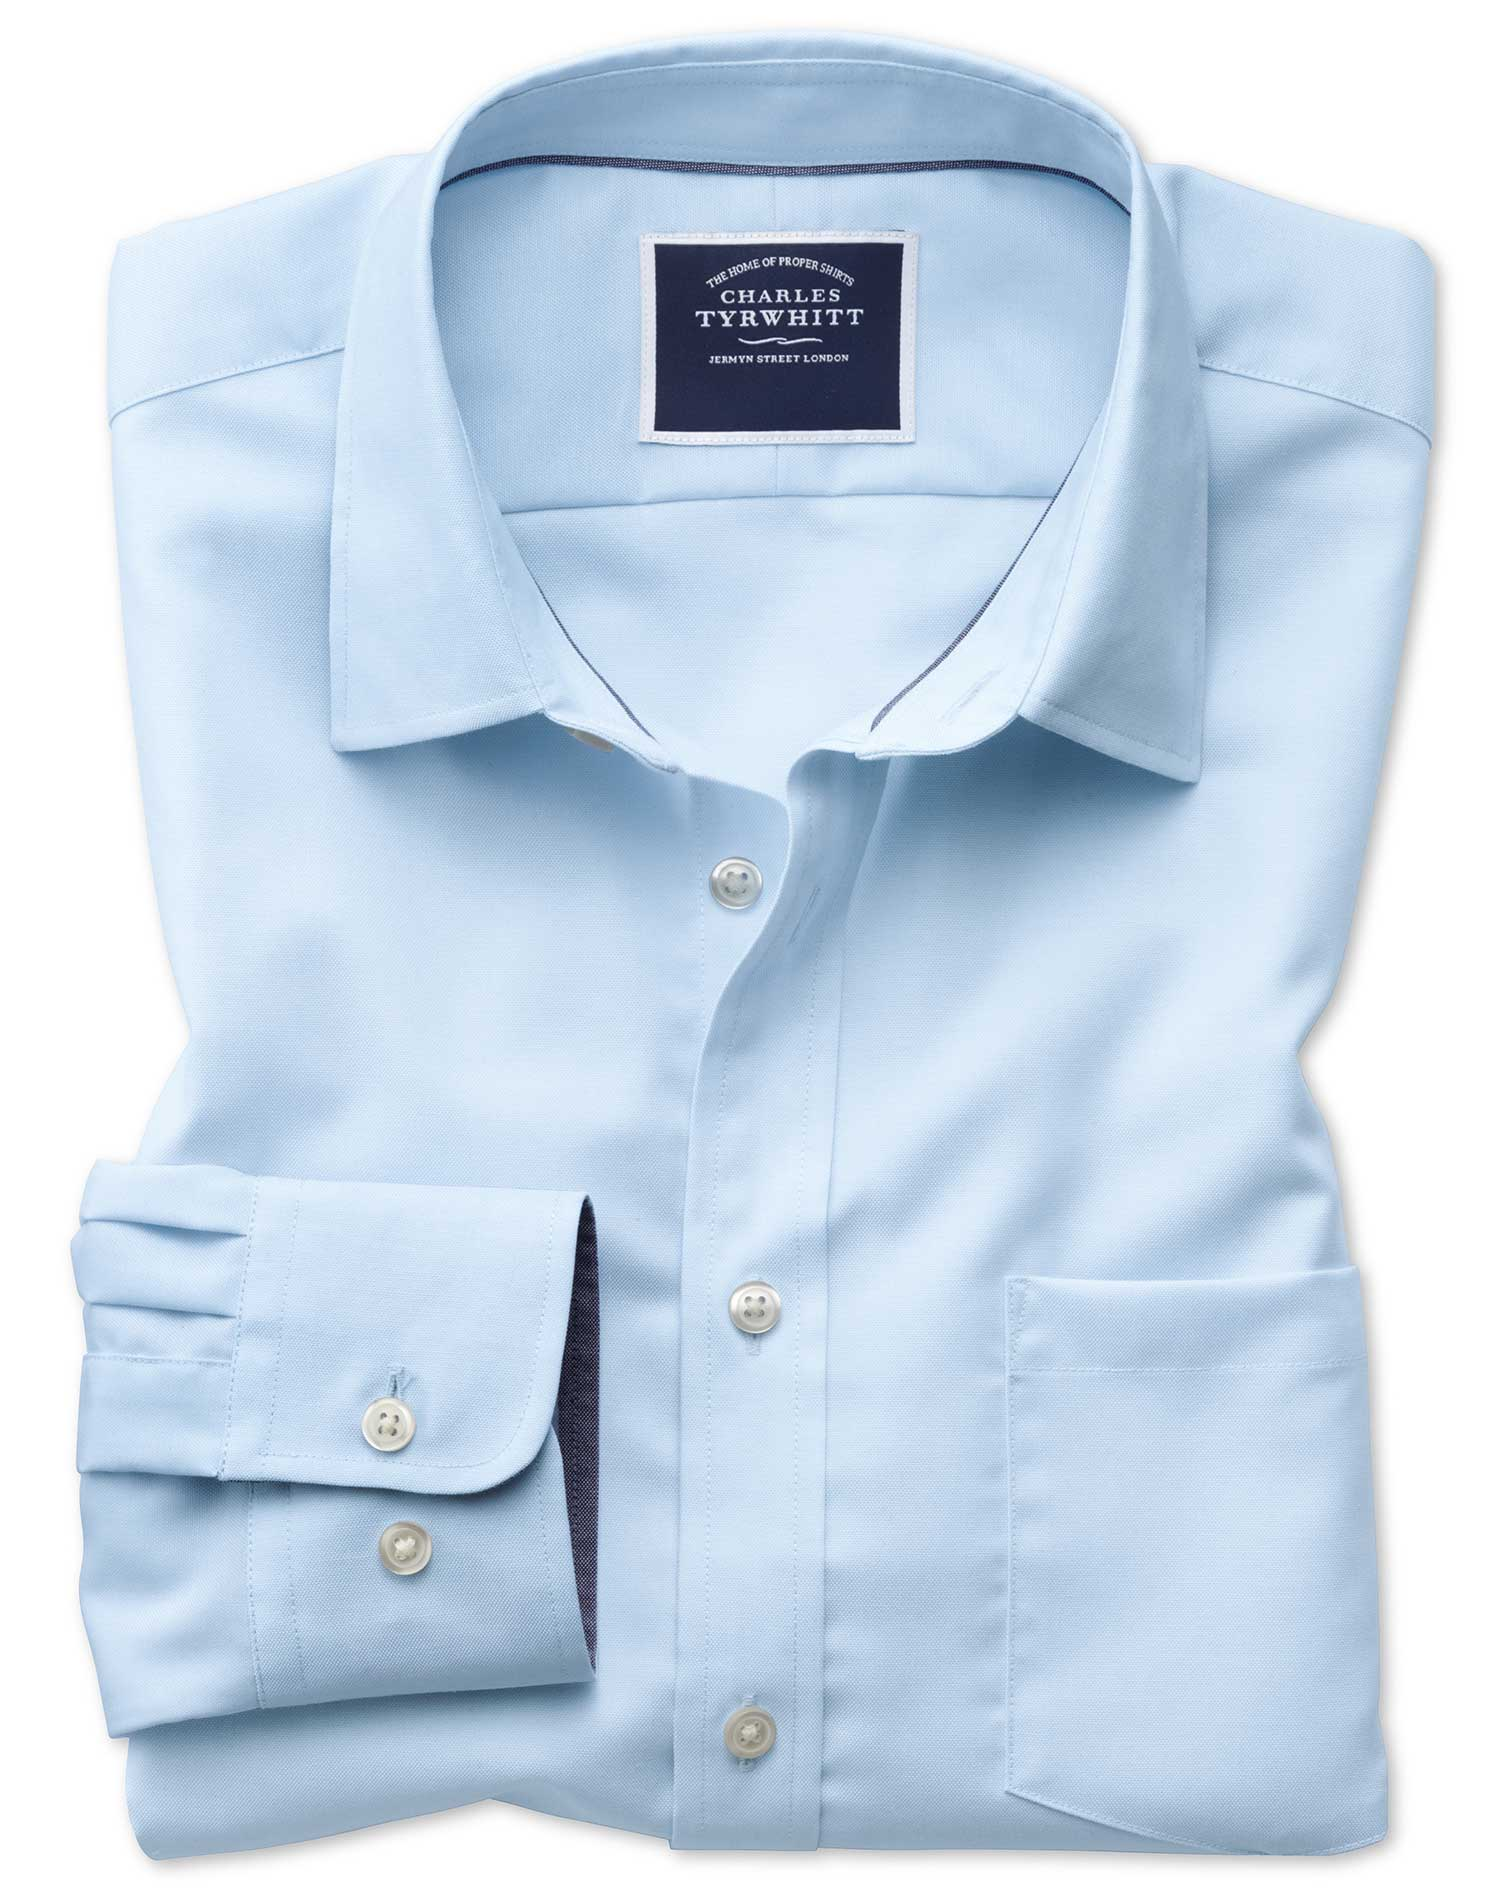 Slim Fit Non-Iron Oxford Light Blue Plain Cotton Shirt Single Cuff Size Large by Charles Tyrwhitt